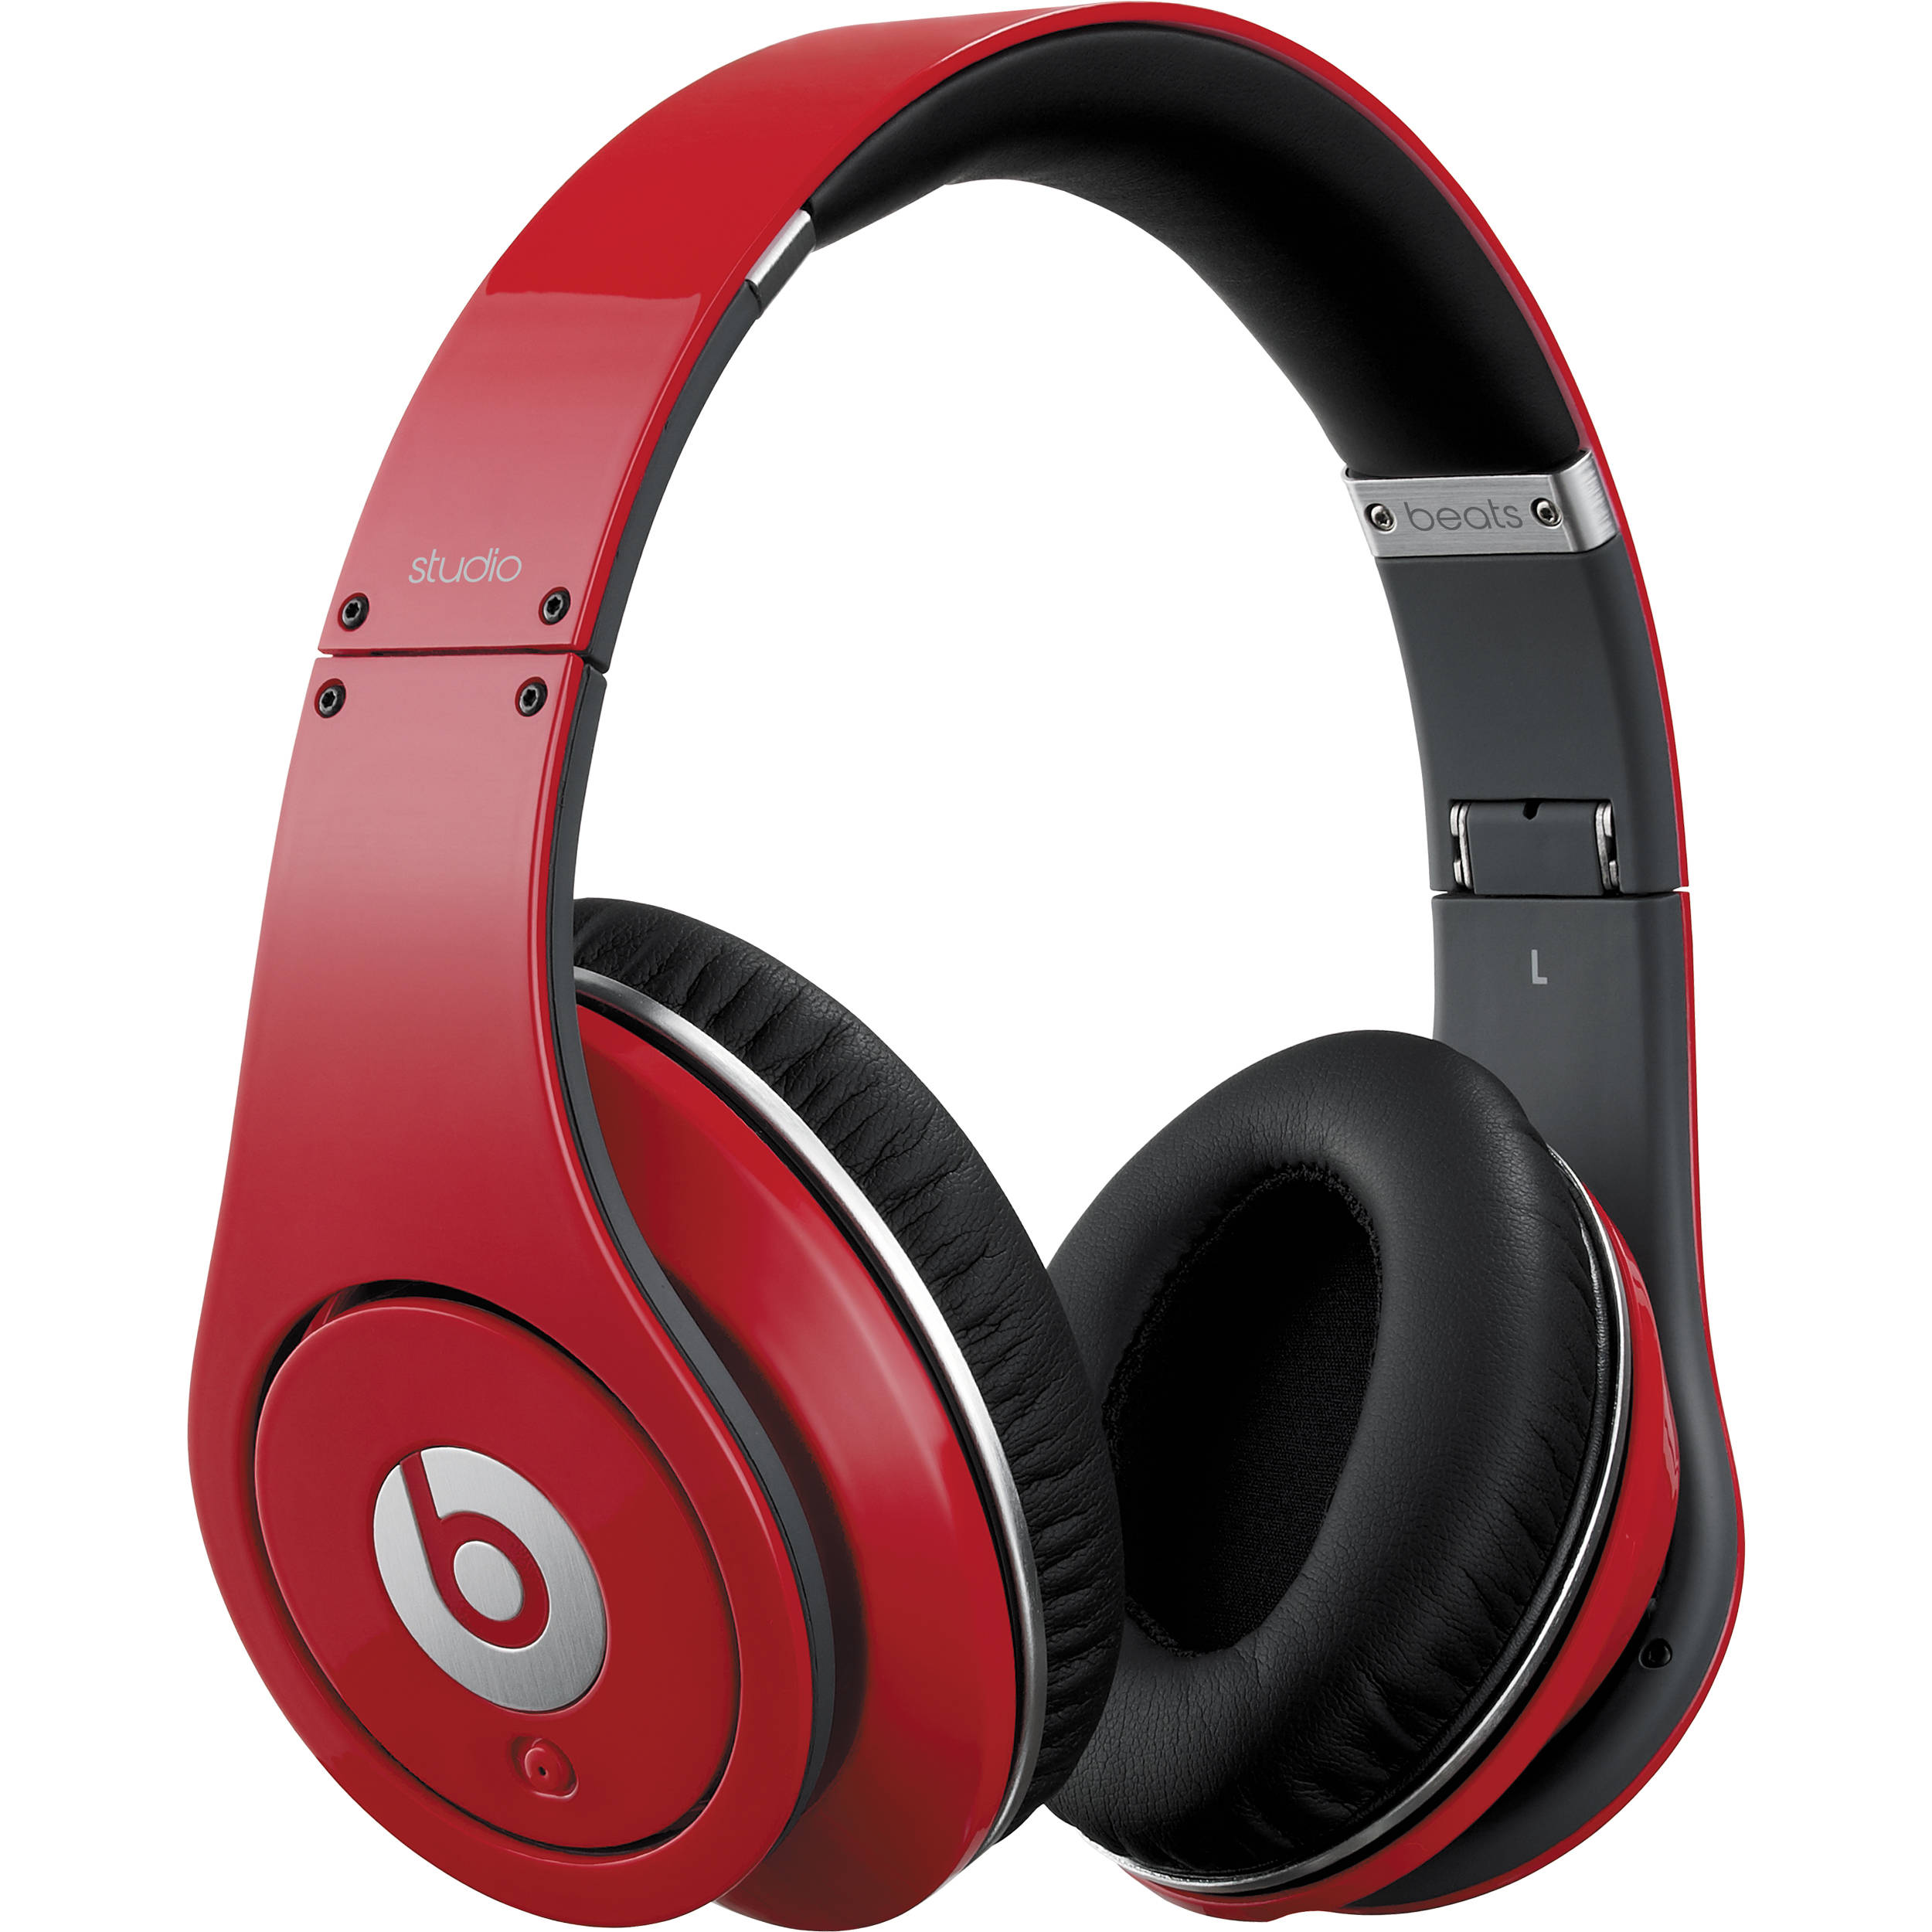 Beats By Dr Dre Beats Studio High Definition 900 00030